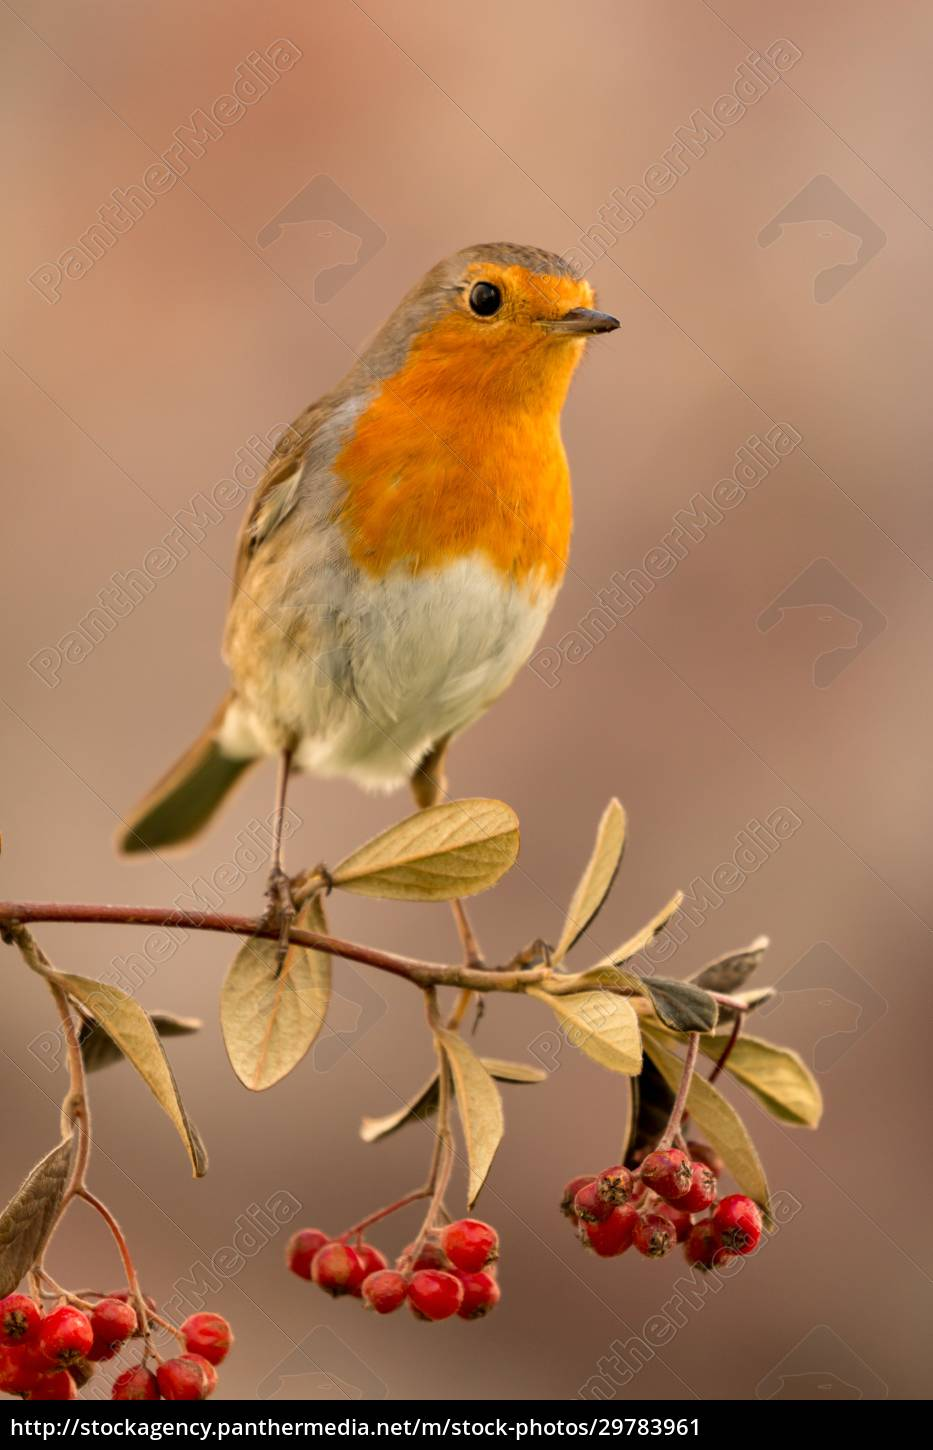 pretty, bird, with, a, nice, red - 29783961